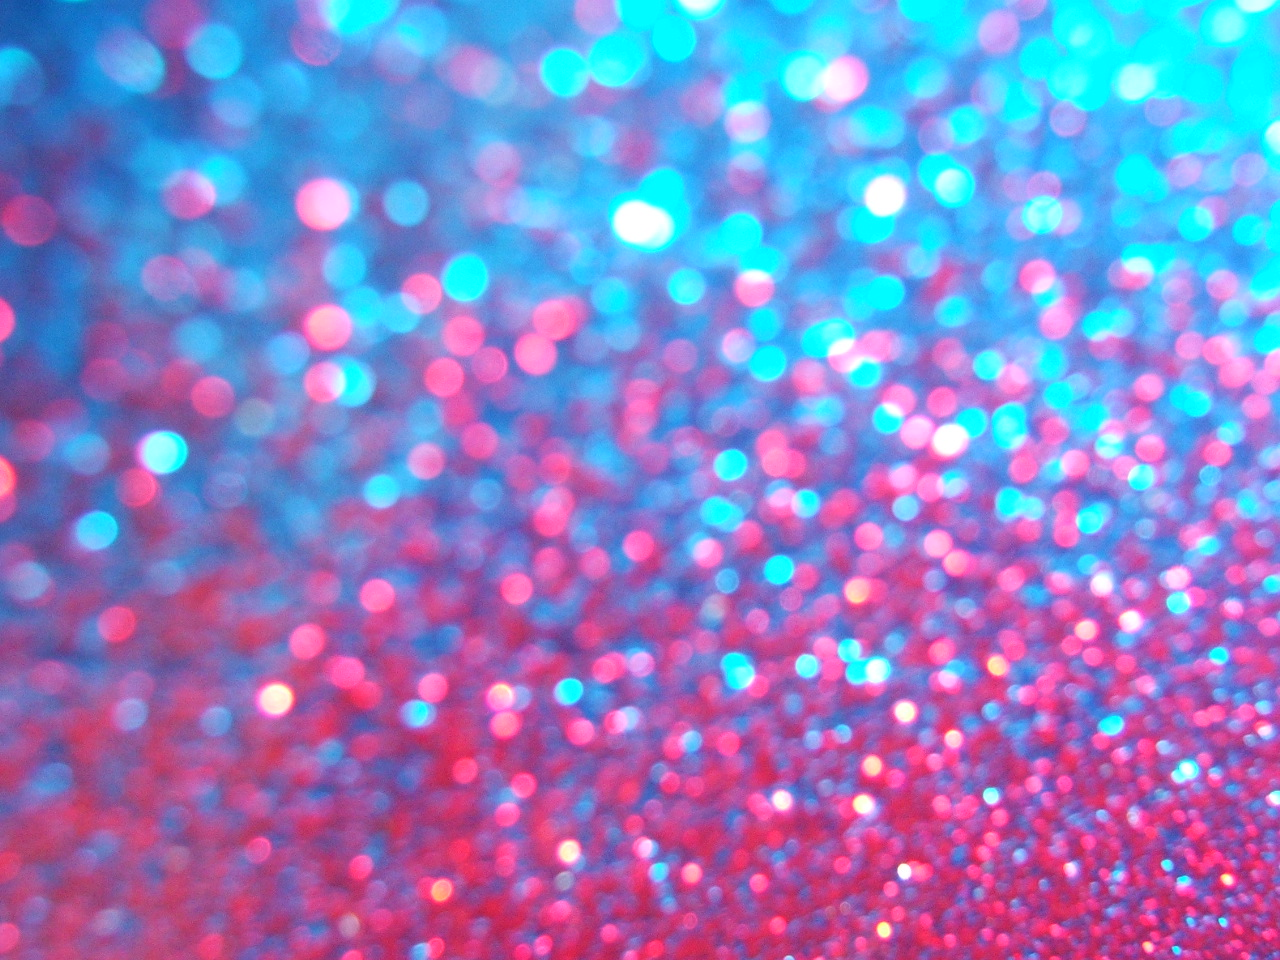 Image of pink and blue speckles